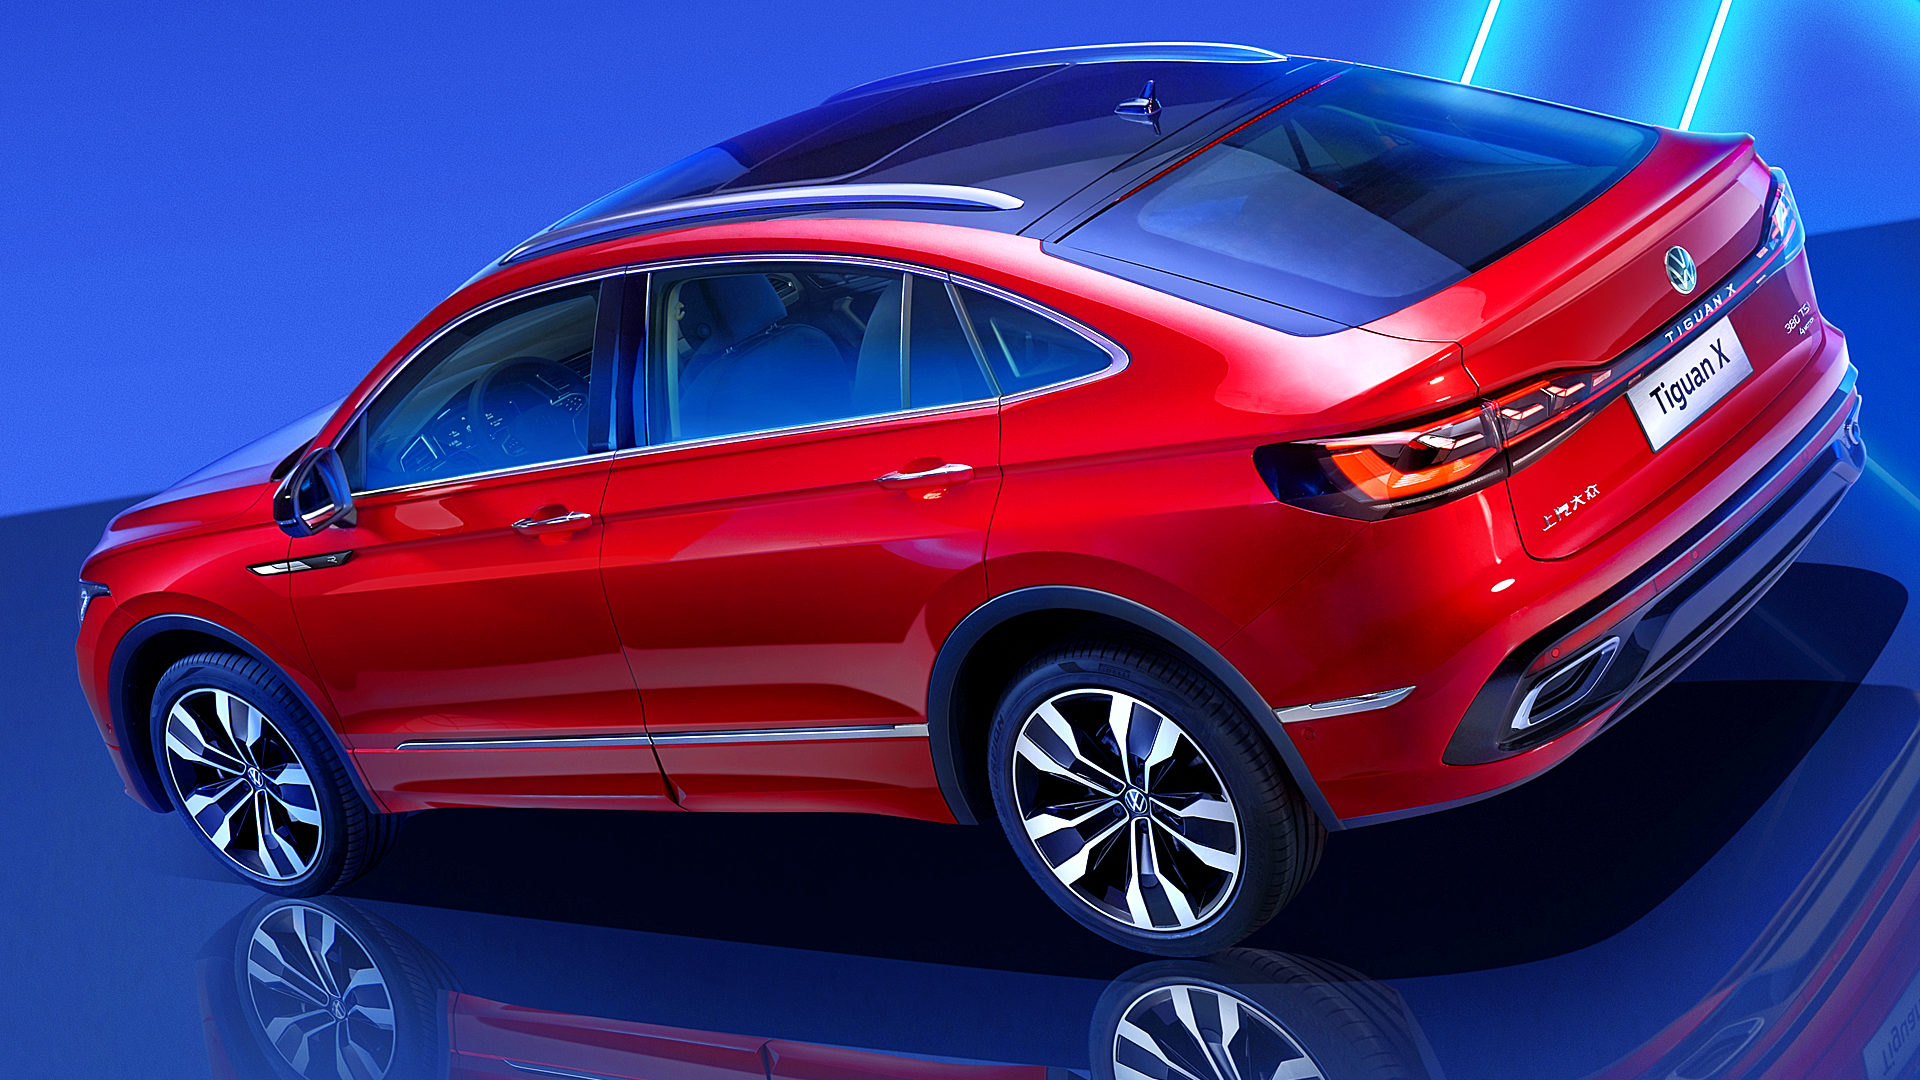 2021 Vw Tiguan X Red Suv Pictures